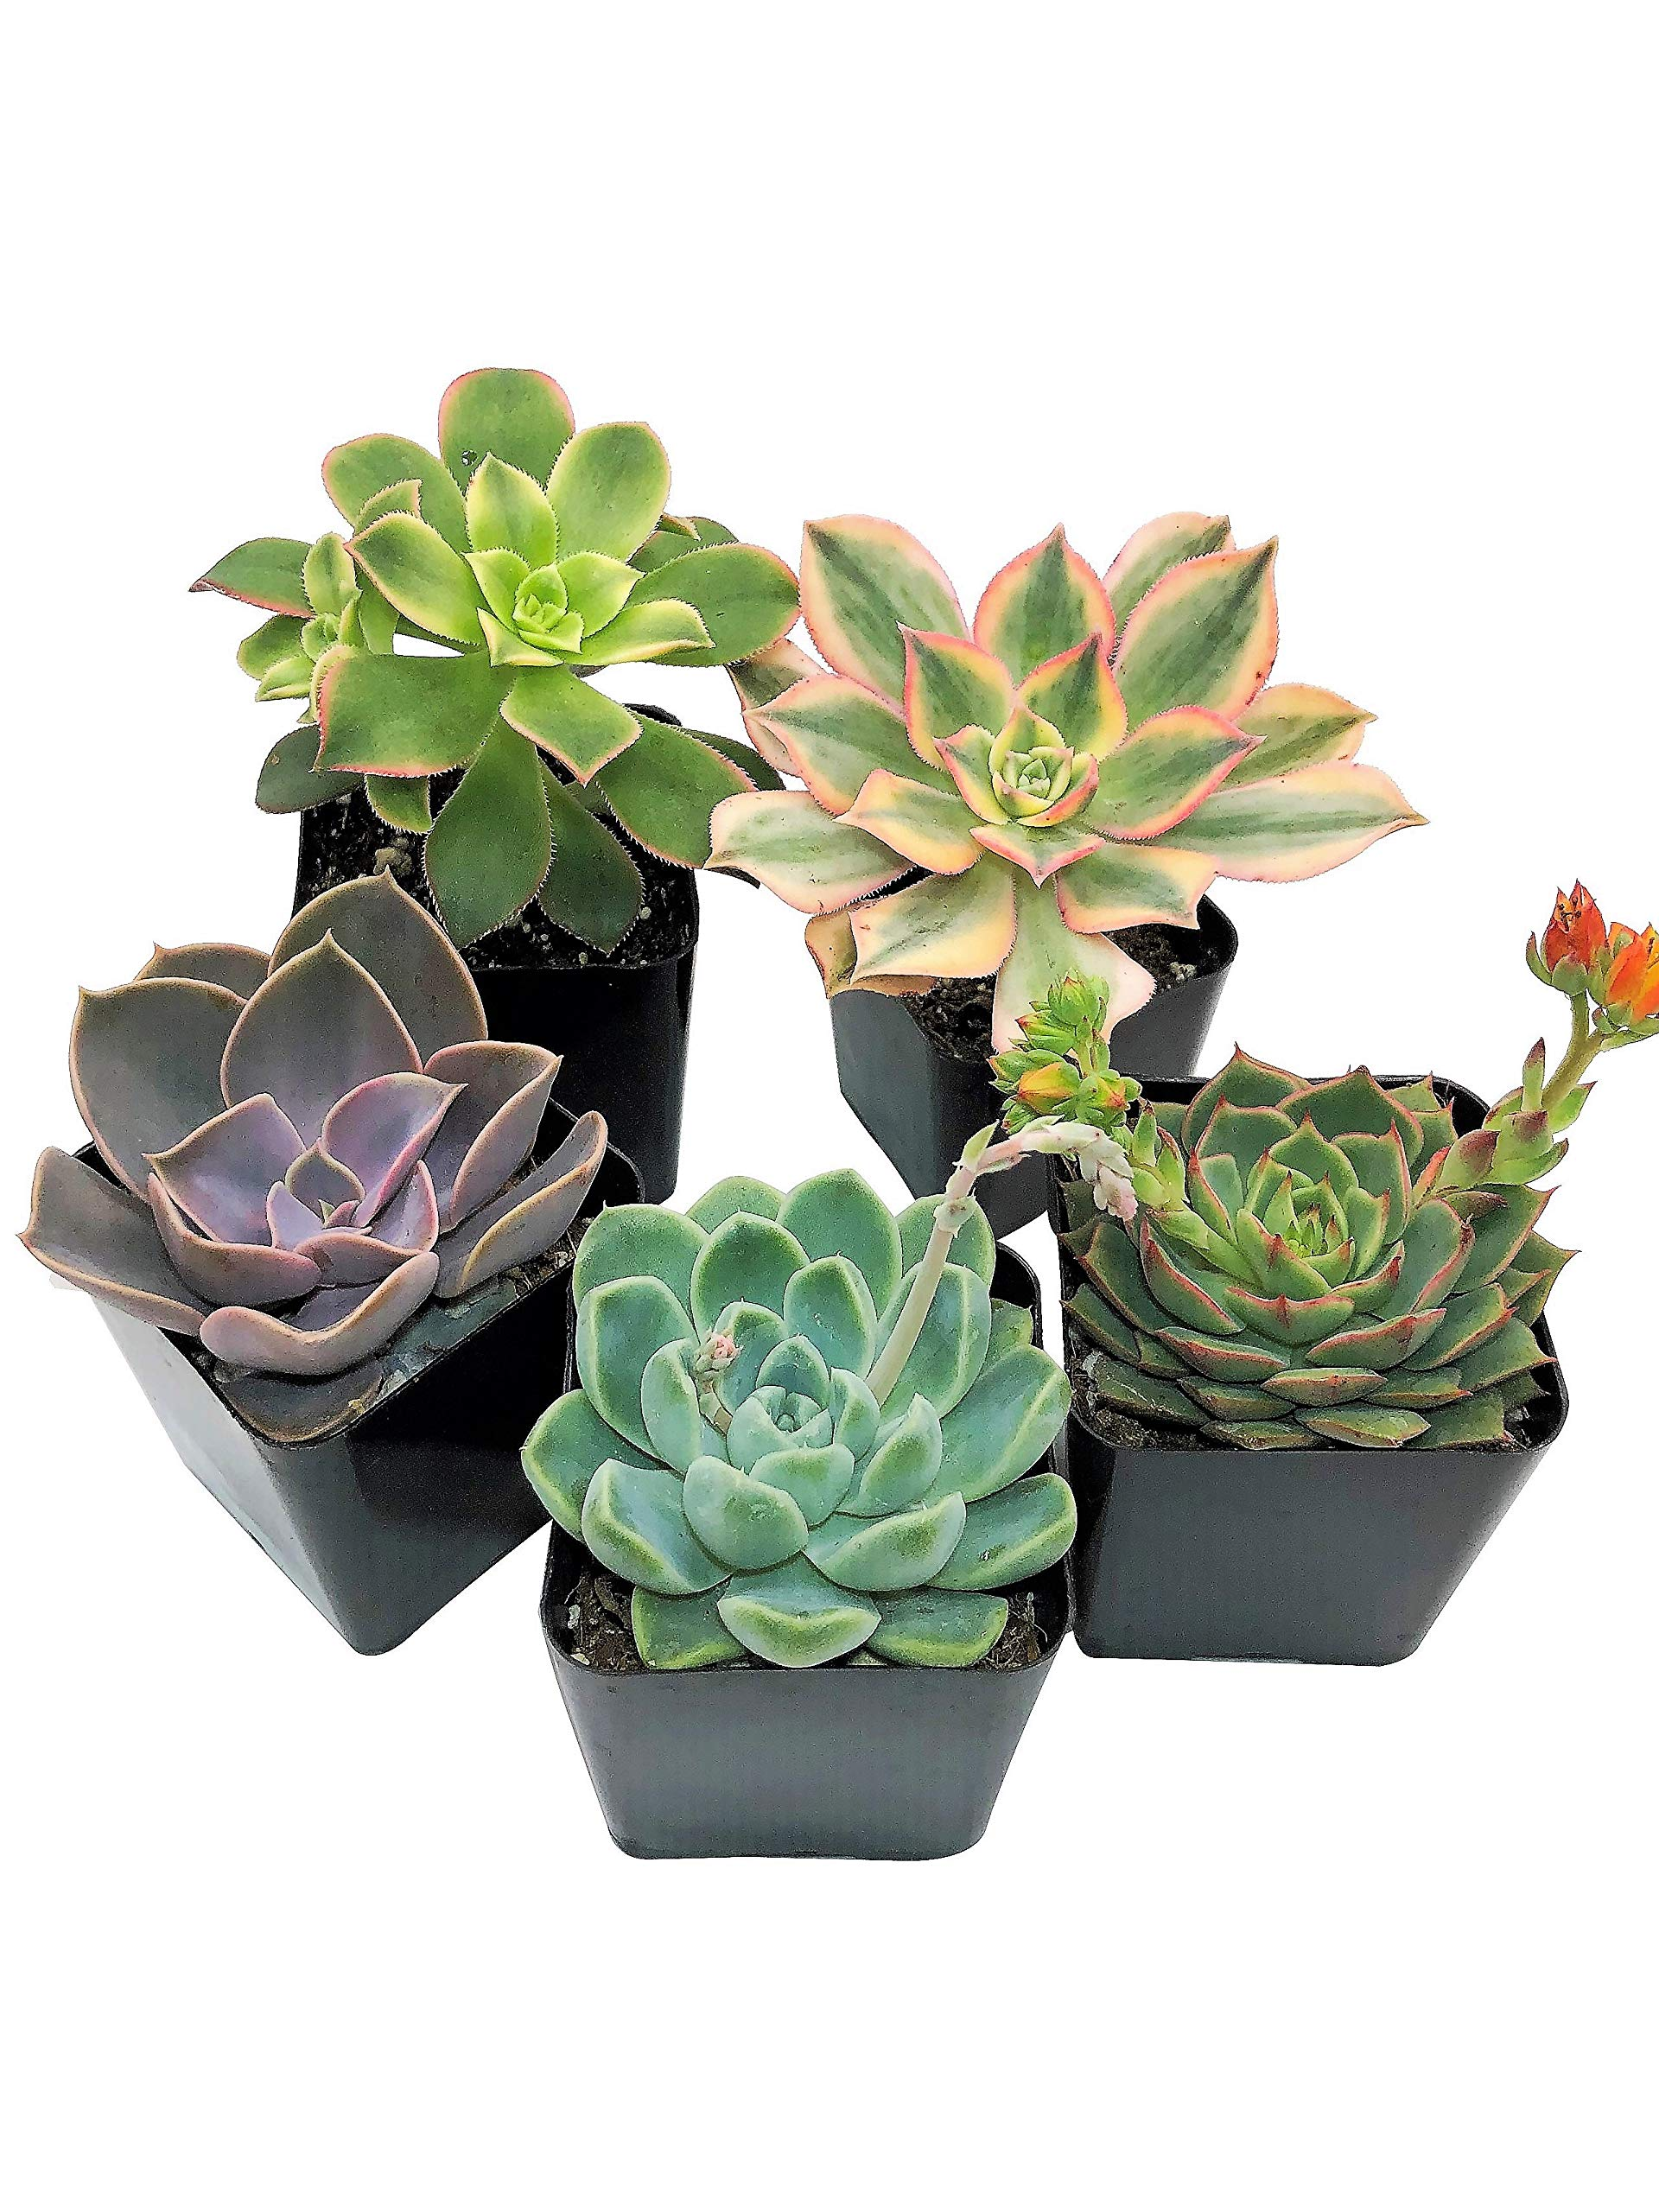 Real Live Succulent Plants (5 Pack), Fully Rooted in Planter Pots with Soil - Unique Indoor Cactus Decor by The Succulent Cult by The Succulent Cult